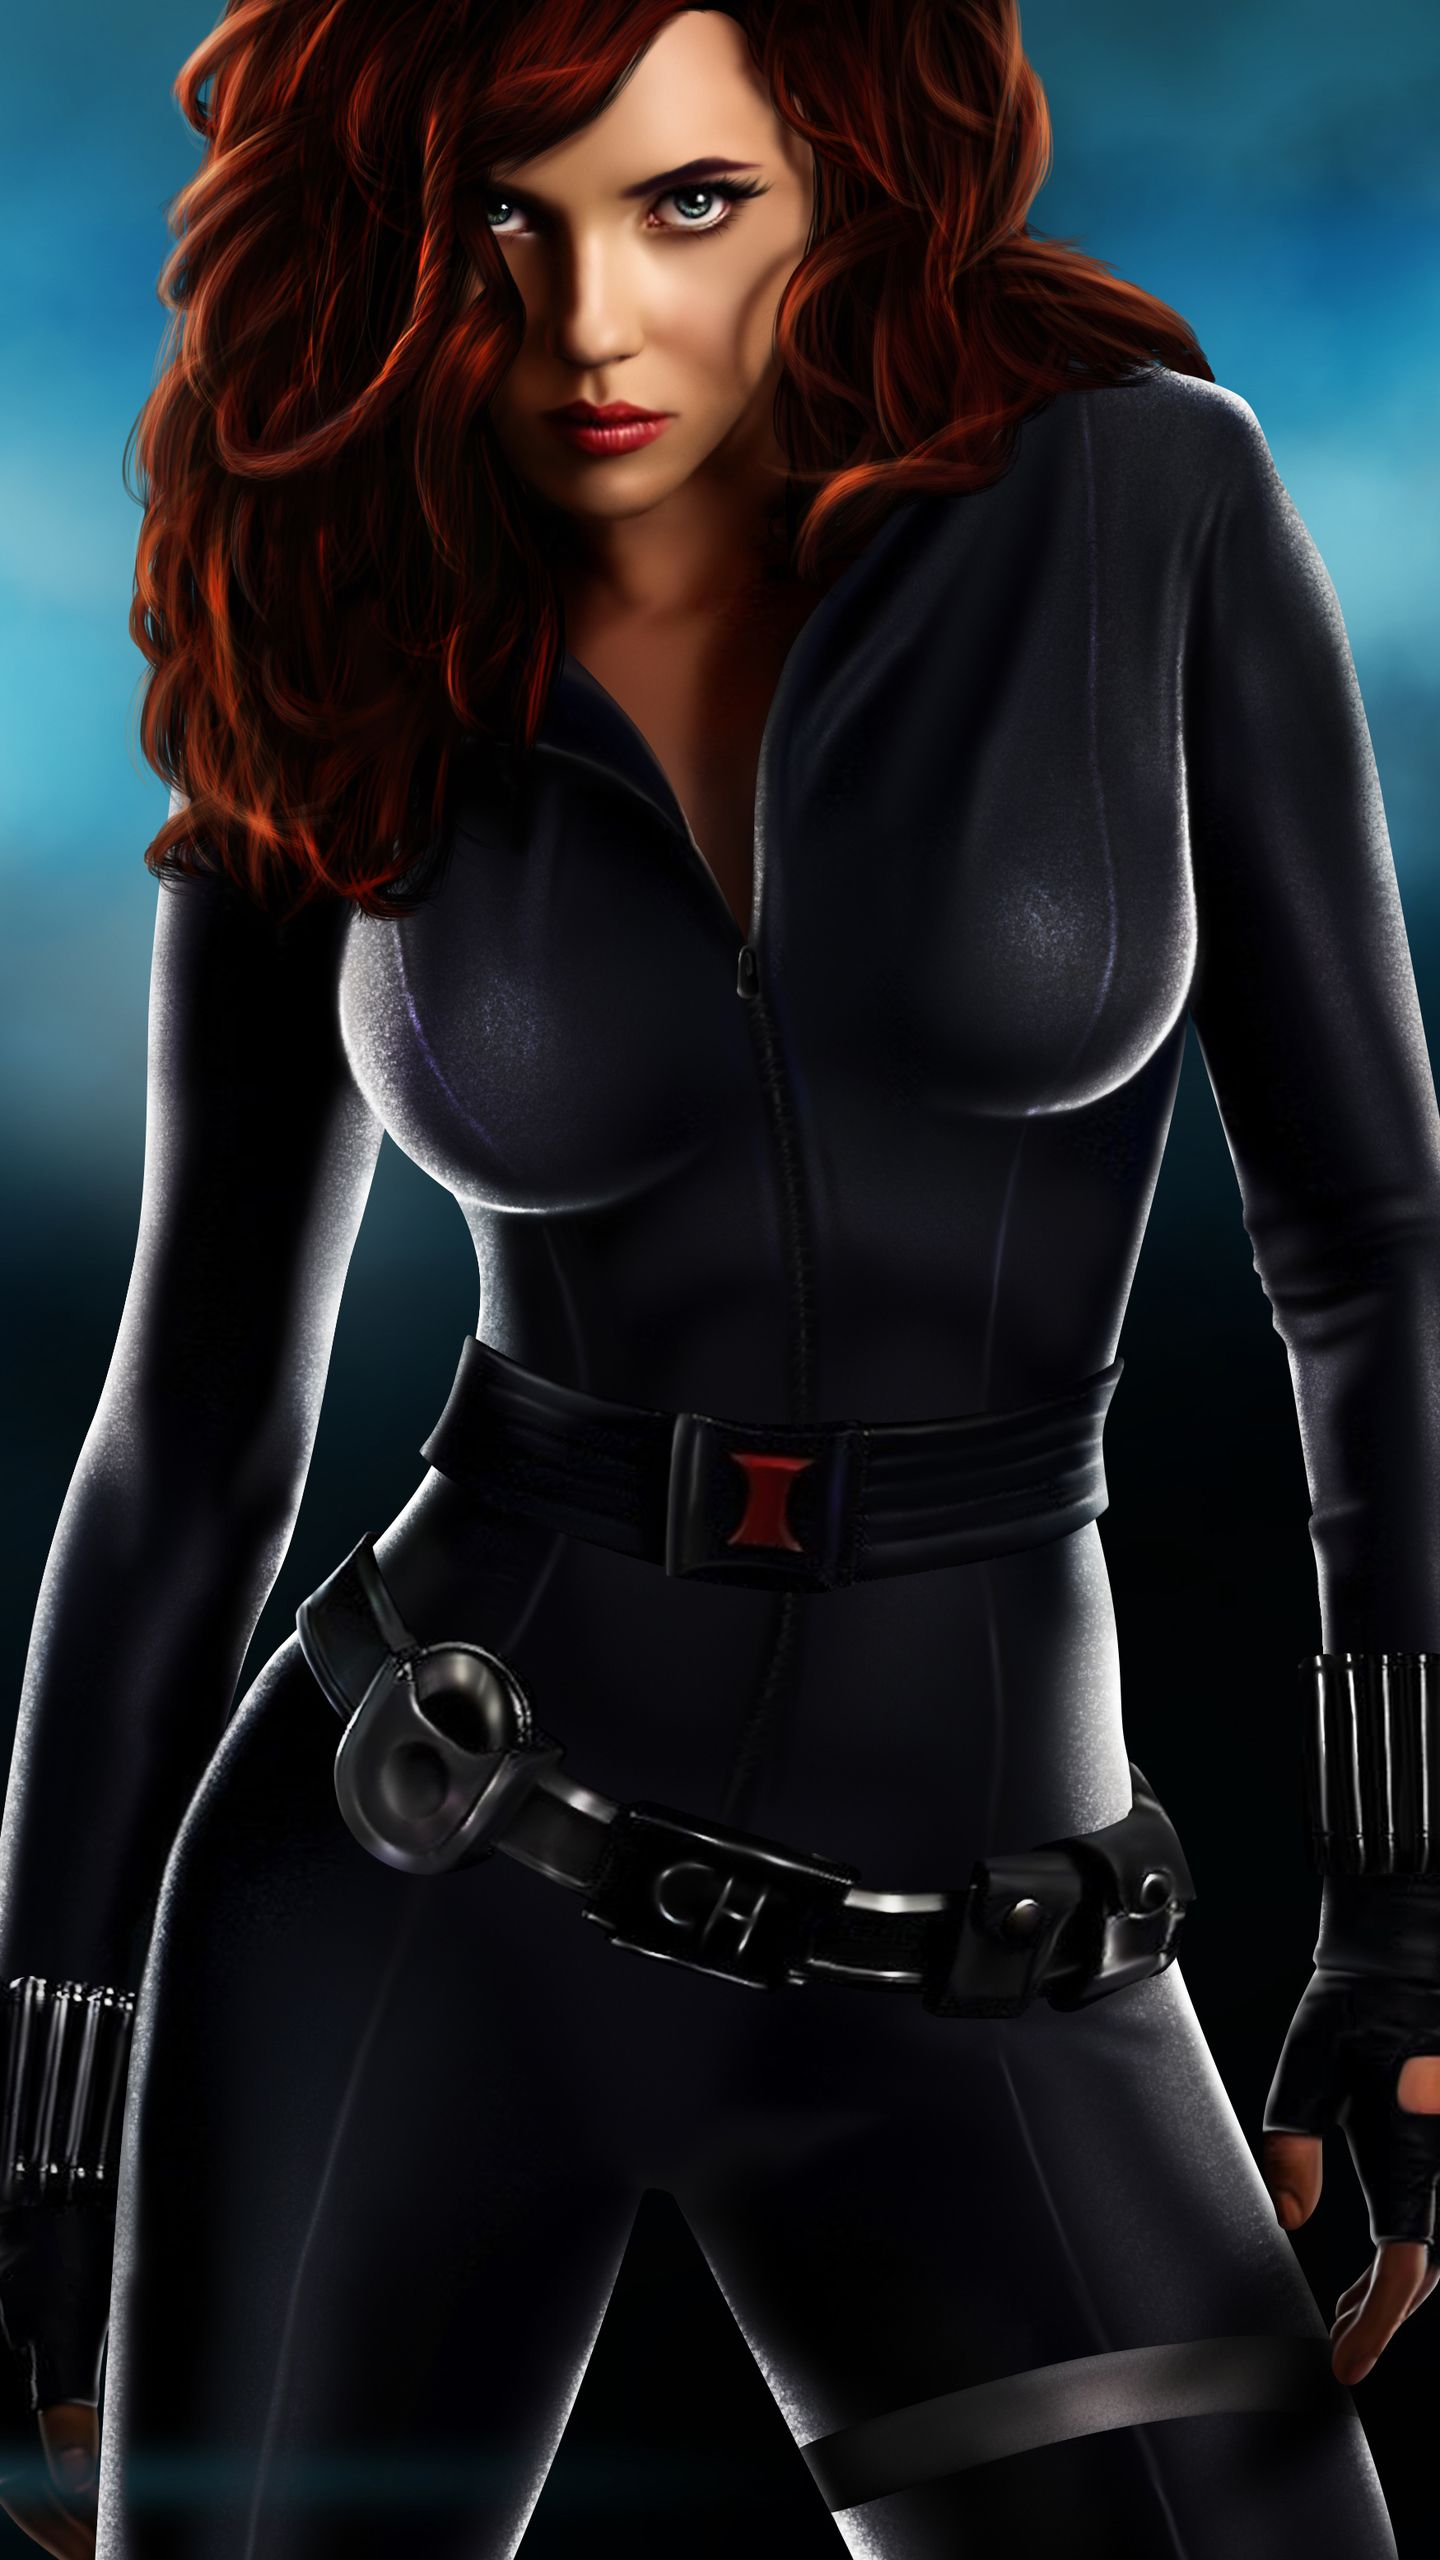 MARVEL CONFIRMS THE DIRECTOR OF BLACK WIDOW STARRING ...